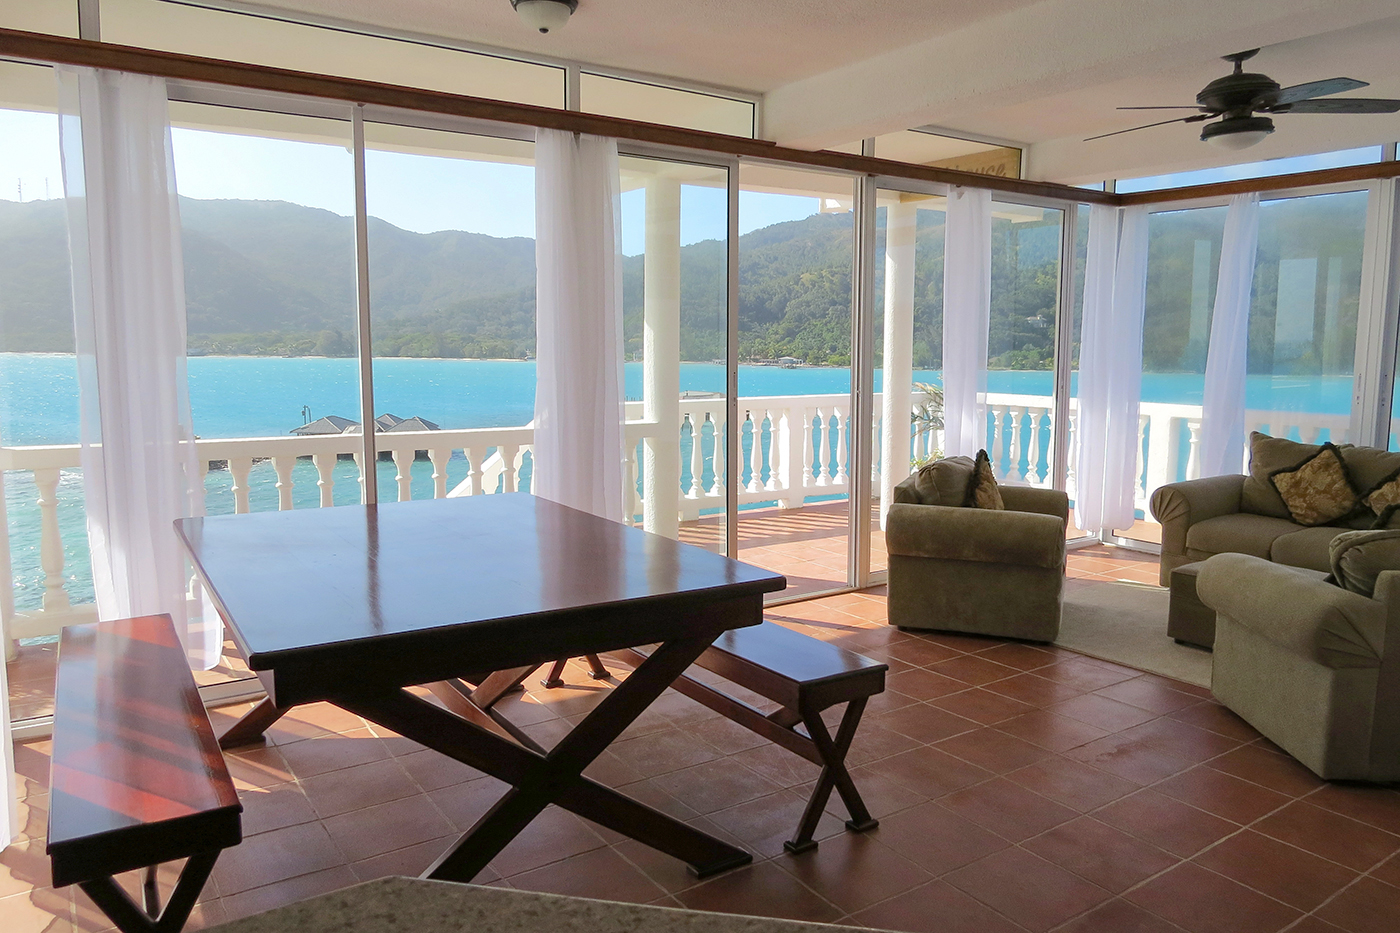 The view from the living room area of the penthouse suite, which perches more than 70 feet above the lagoon.